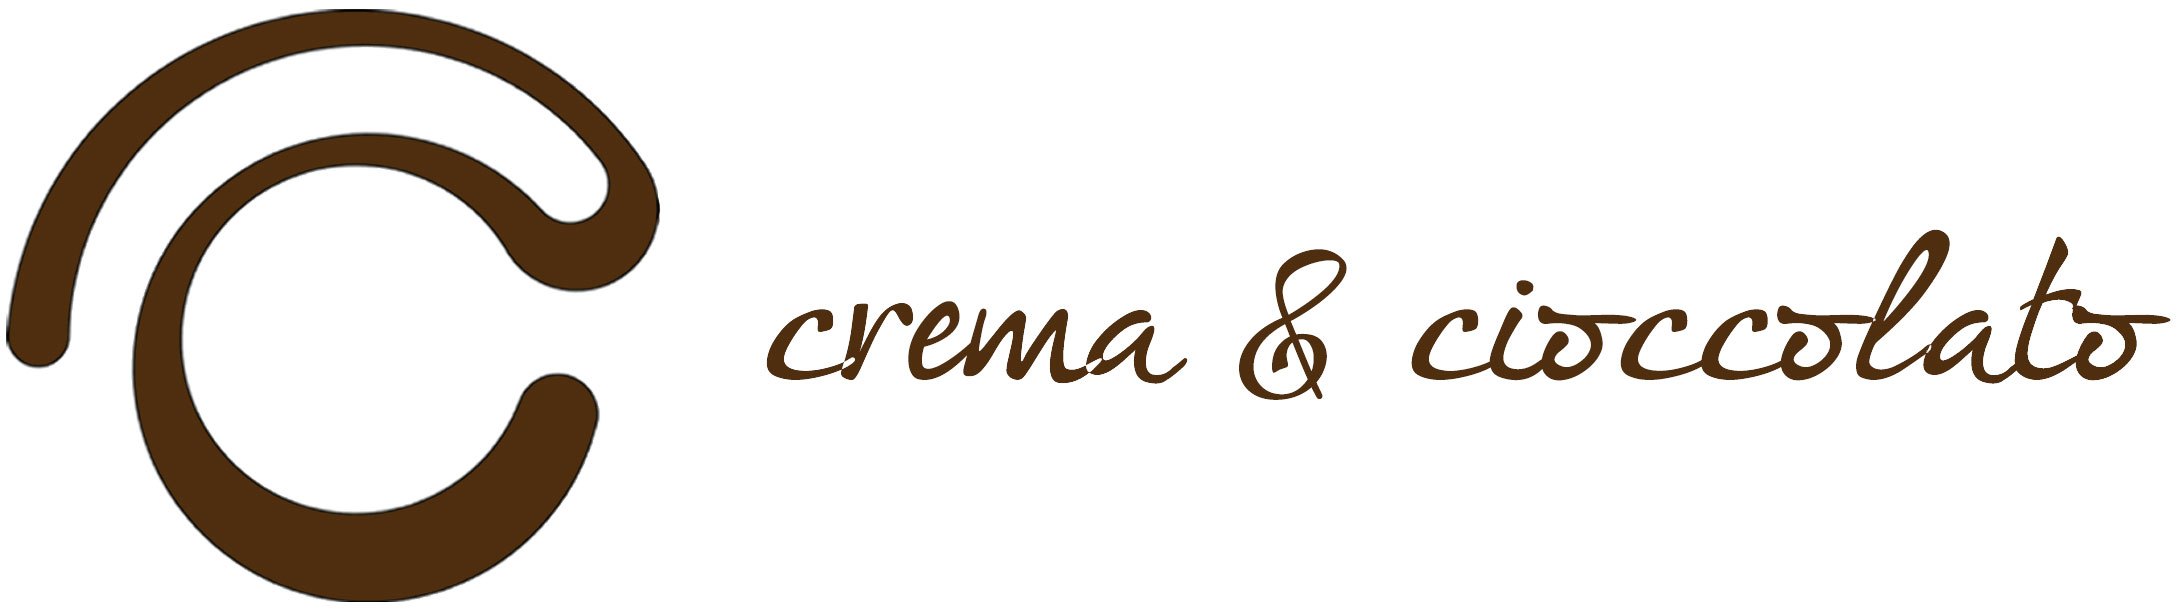 Crema & Cioccolato - Gelateria in franchising?